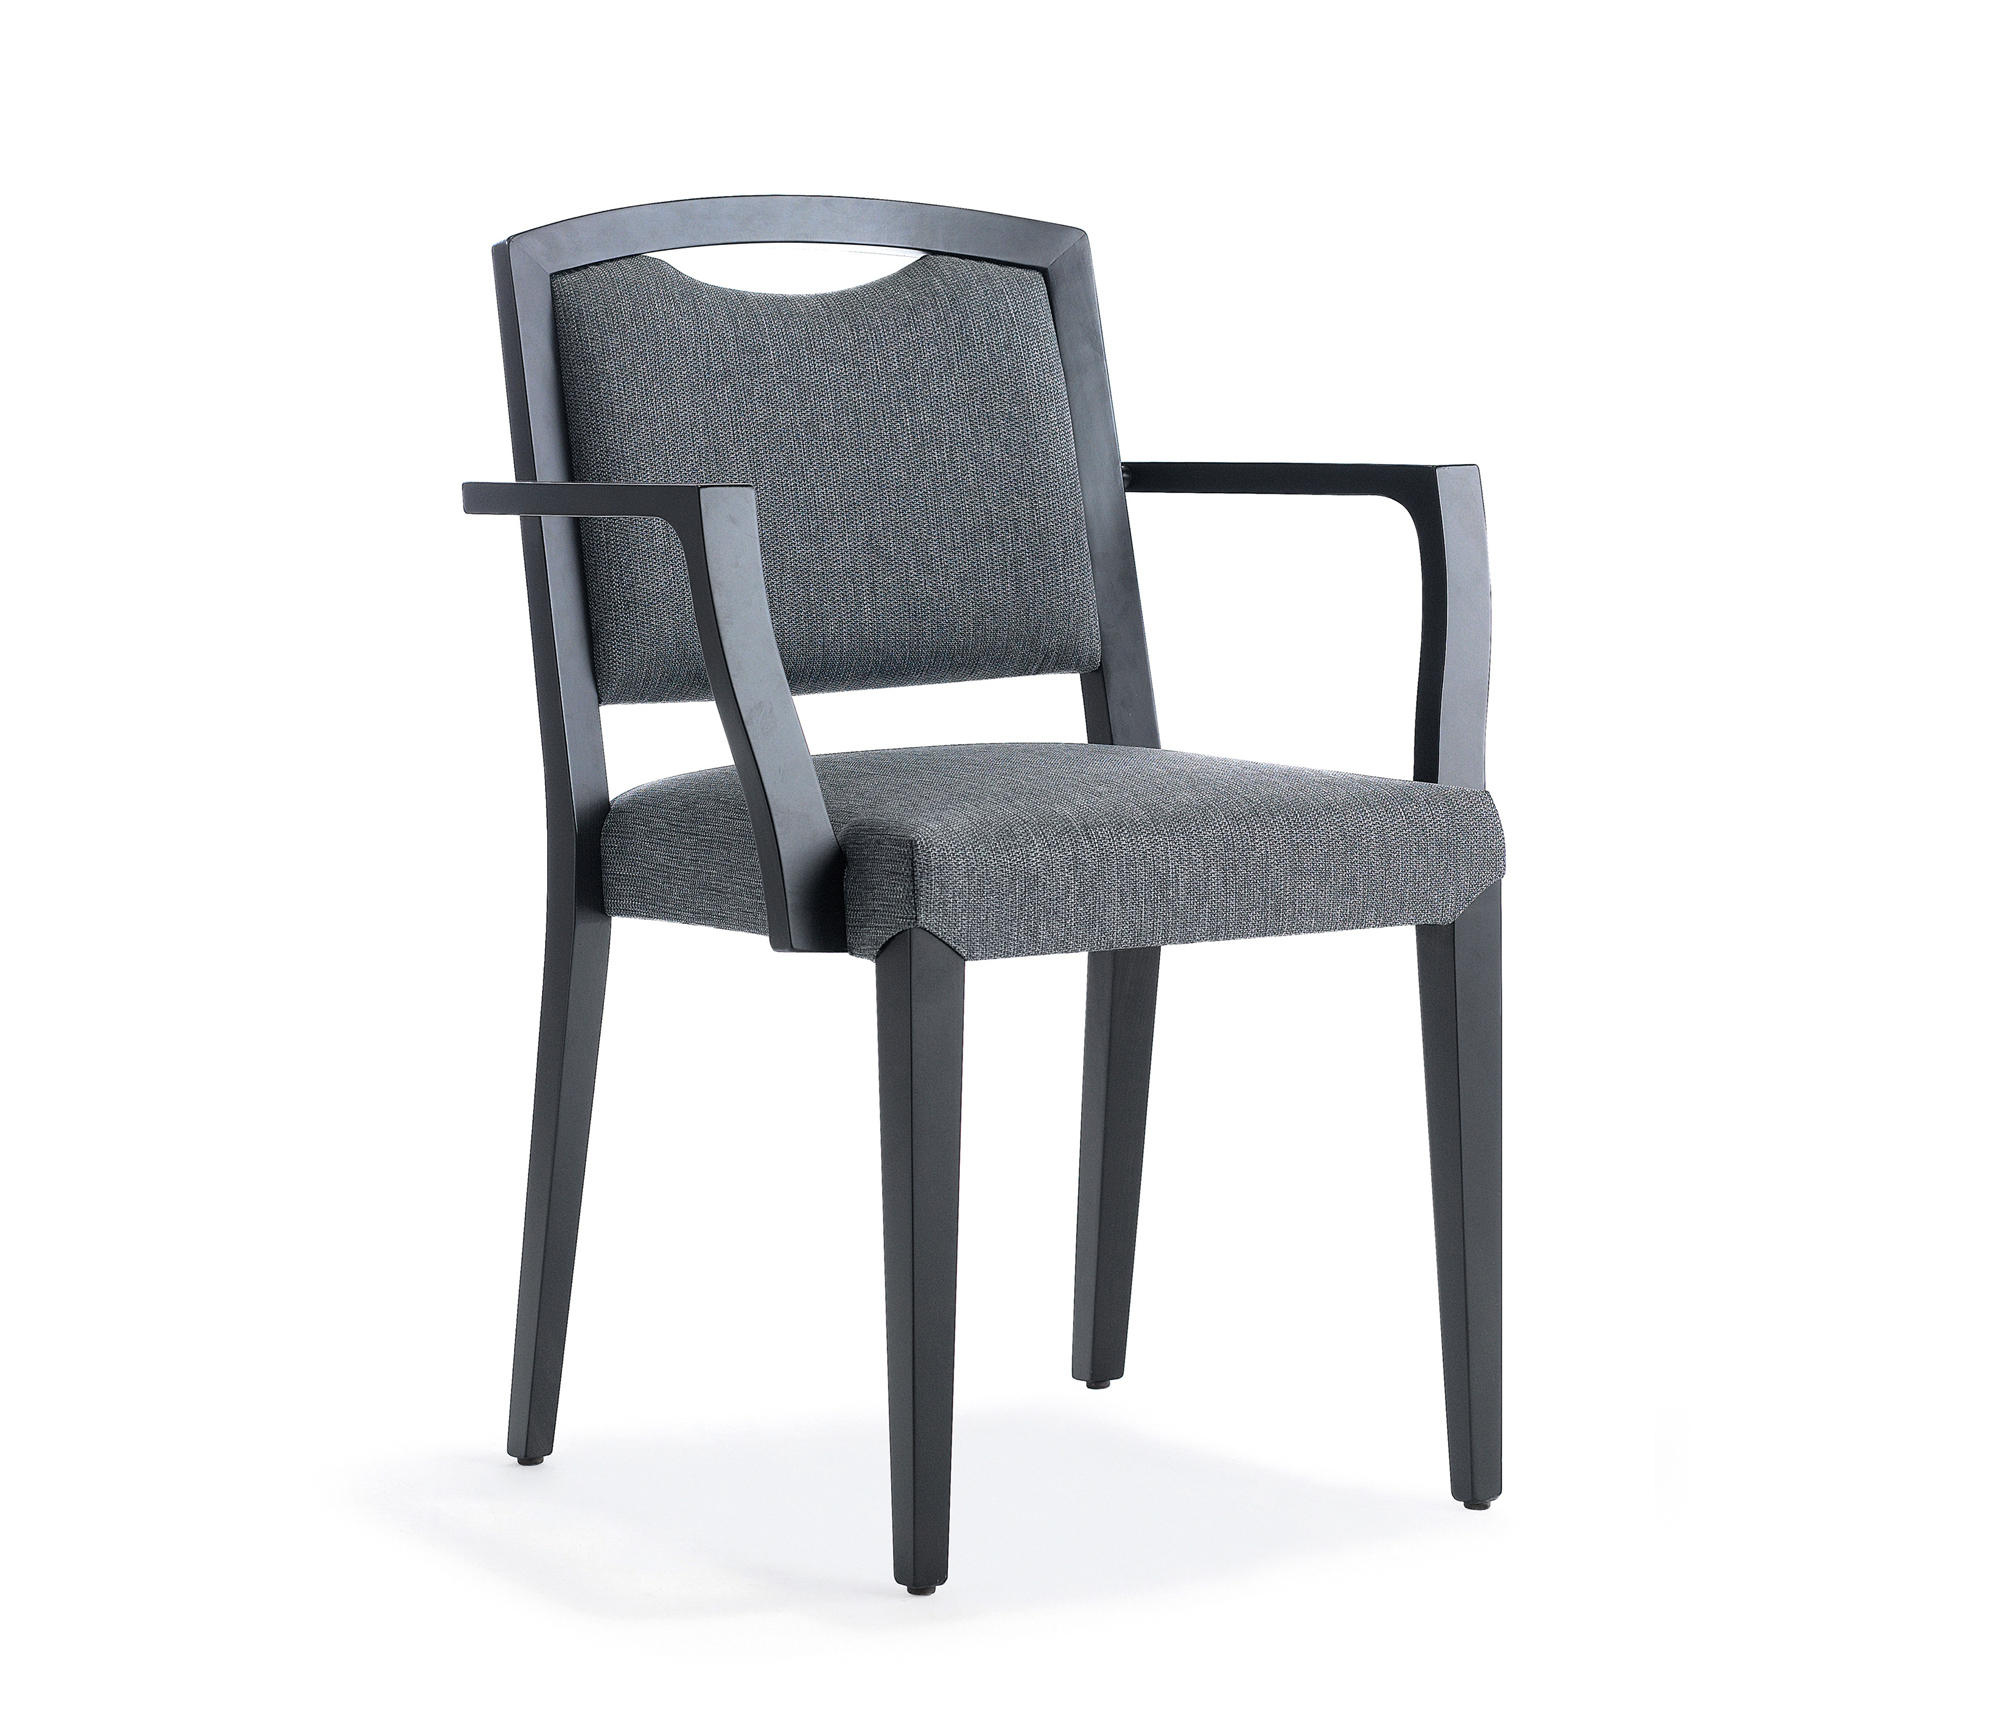 Bart SBI Stacking By Motivo | Visitors Chairs / Side Chairs